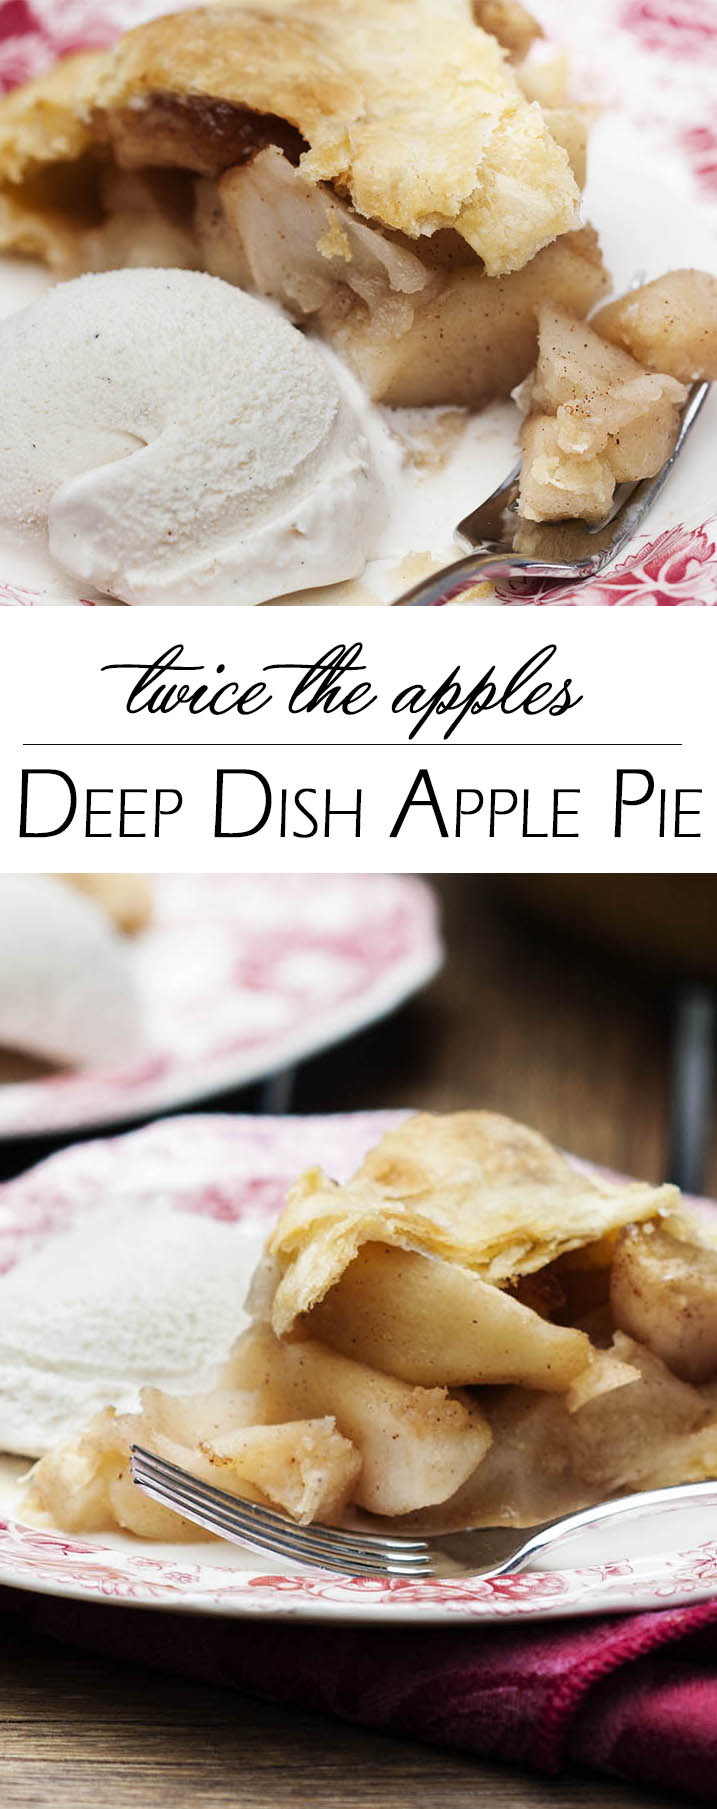 Deep Dish Apple Pie - This deep dish apple pie packs twice the apples and twice the flavor into every slice of pie in this twist on the classic recipe. | justalittlebitofbacon.com